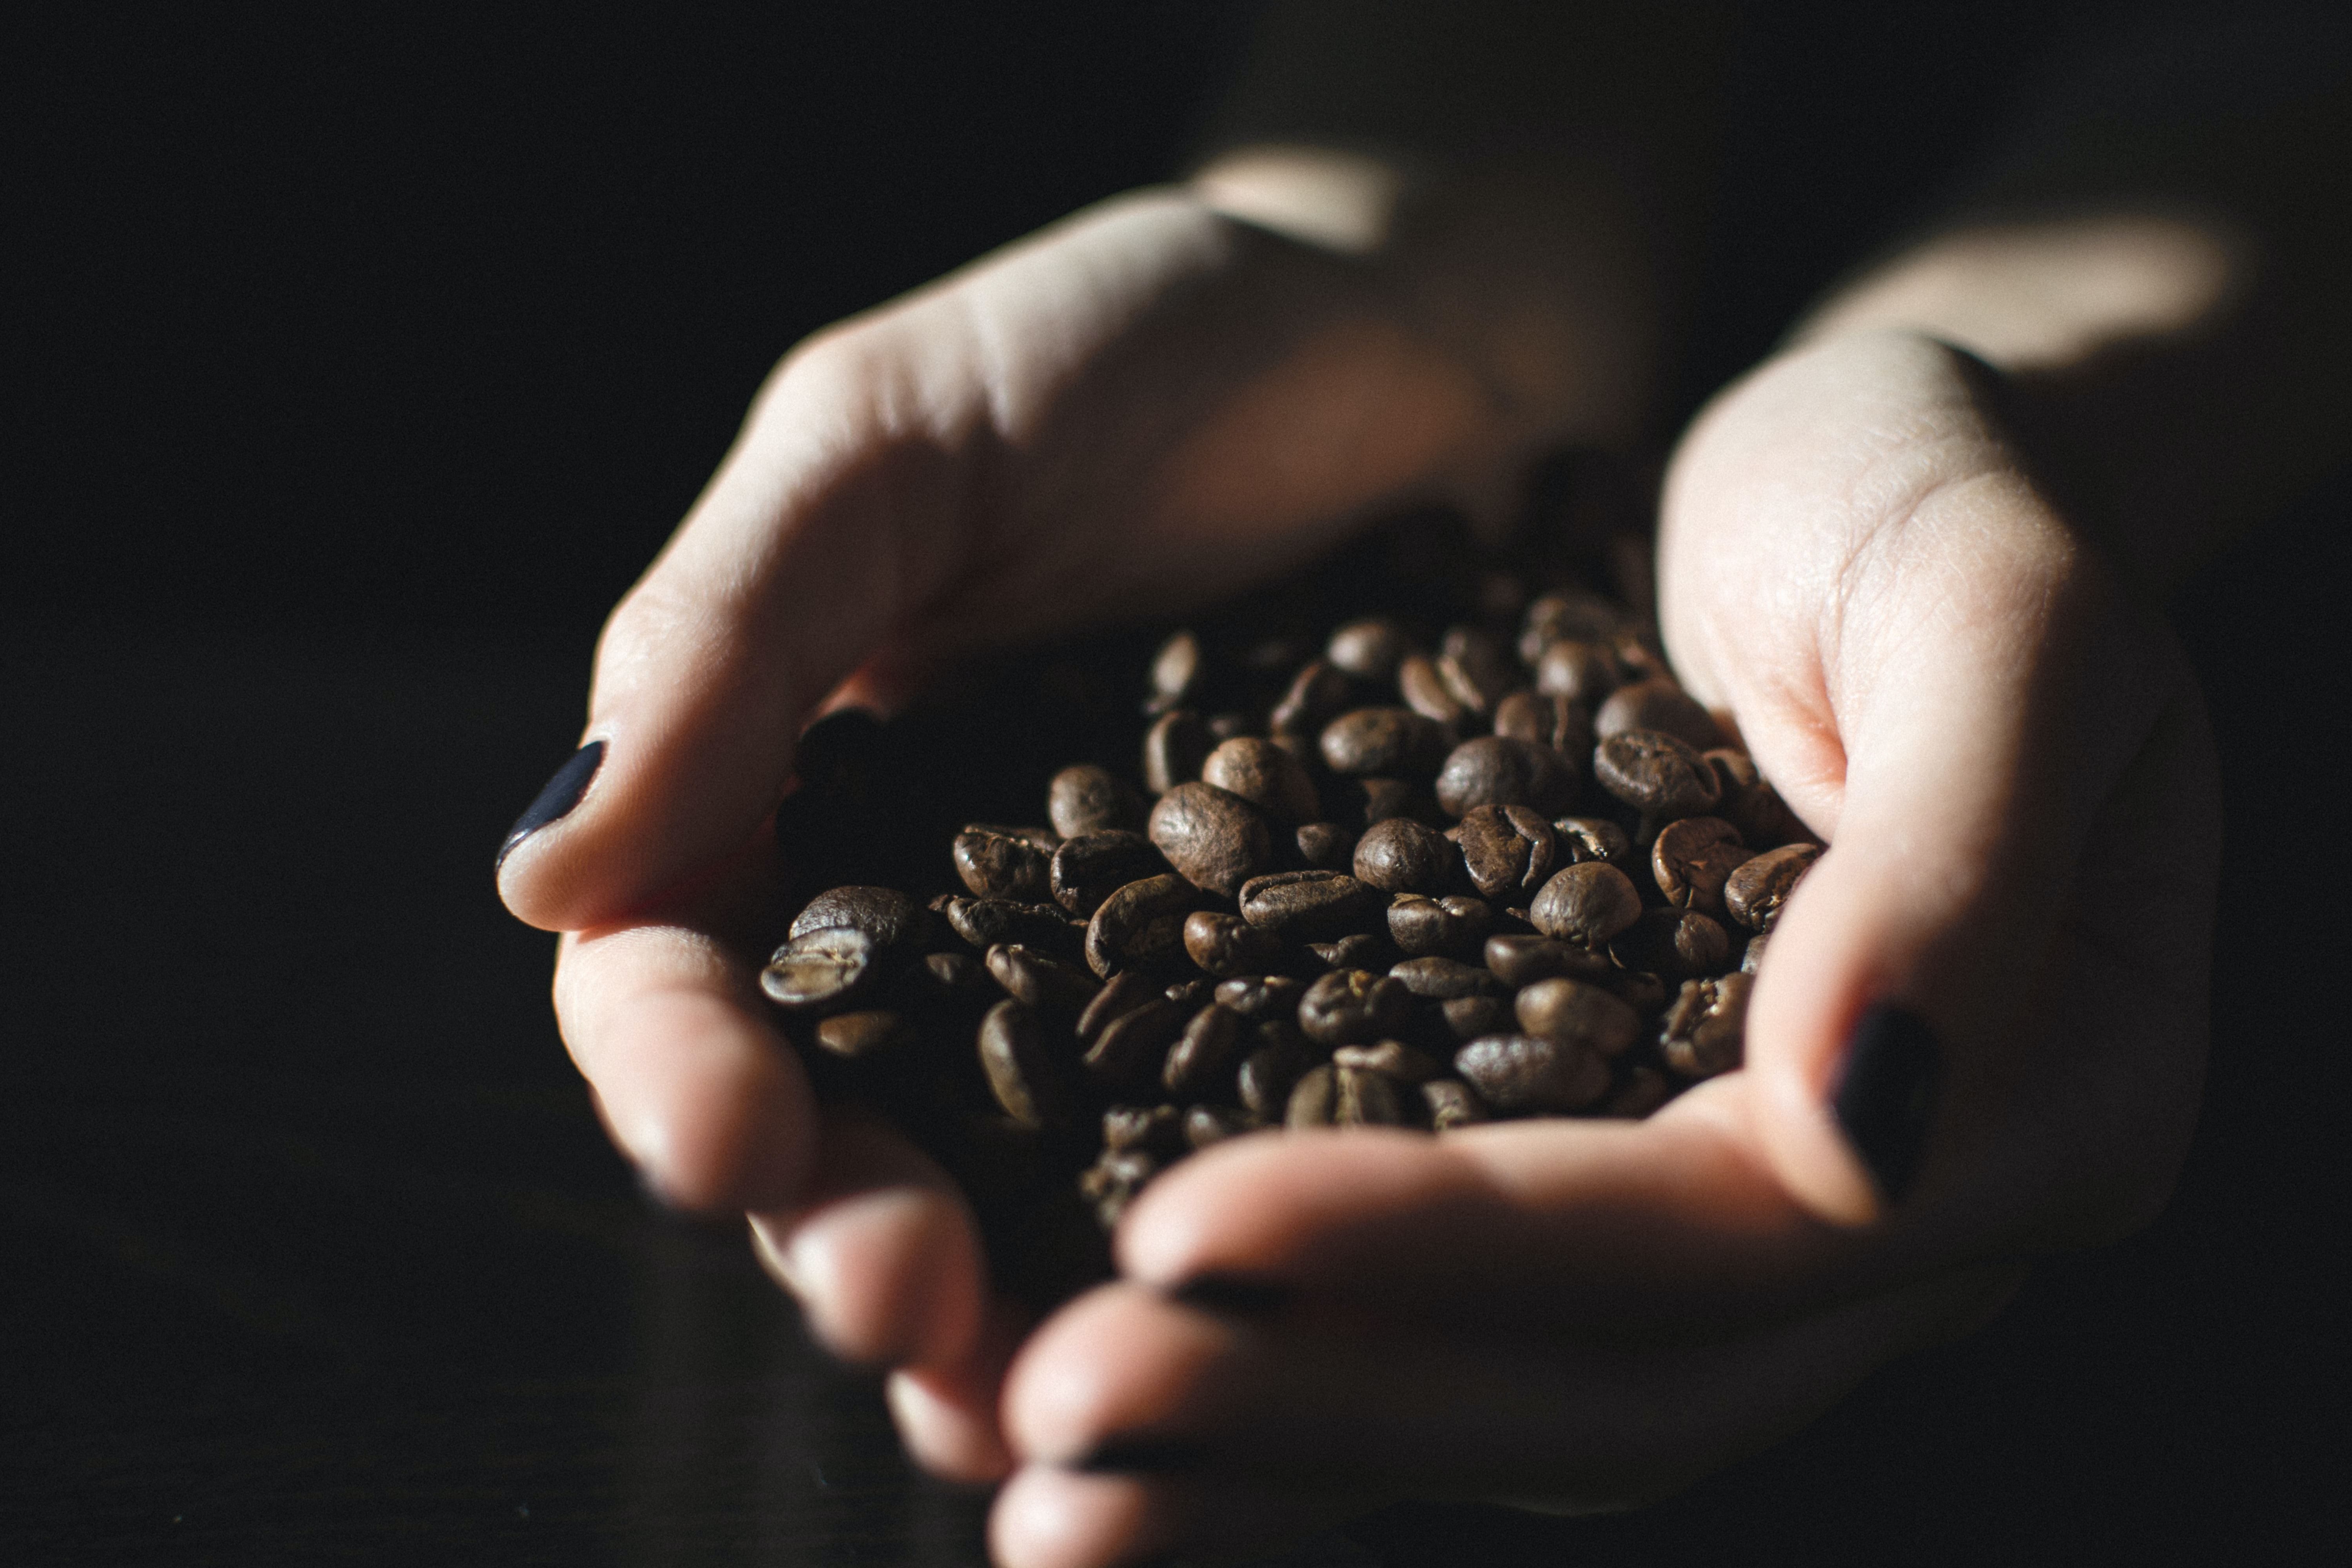 A woman's hands with fingernails painted black holding dark brown coffee beans